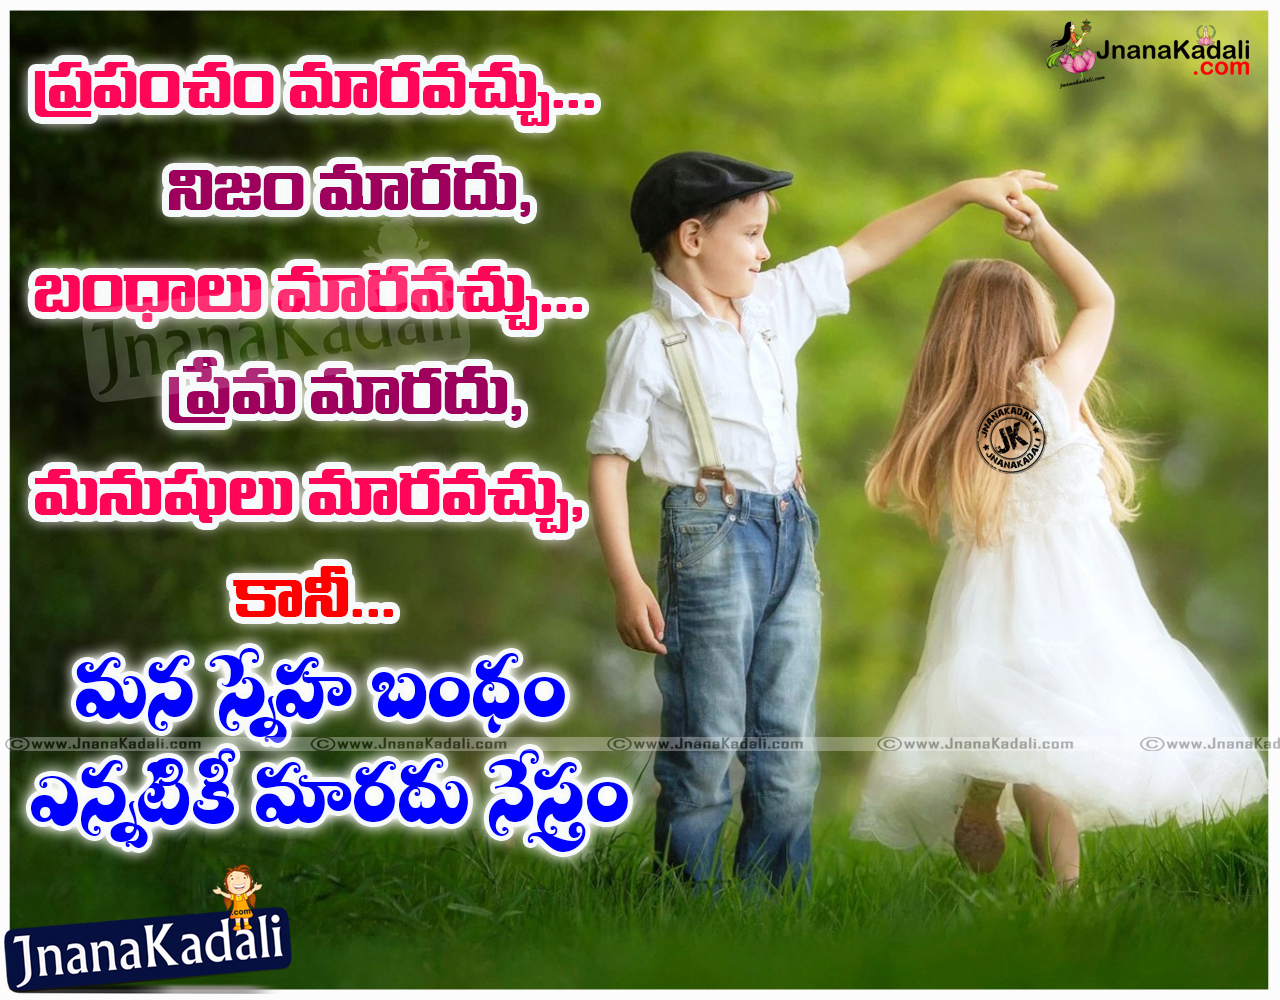 Friendship Quotes For Girls And Boys Telugu Best Loving Telugu Love